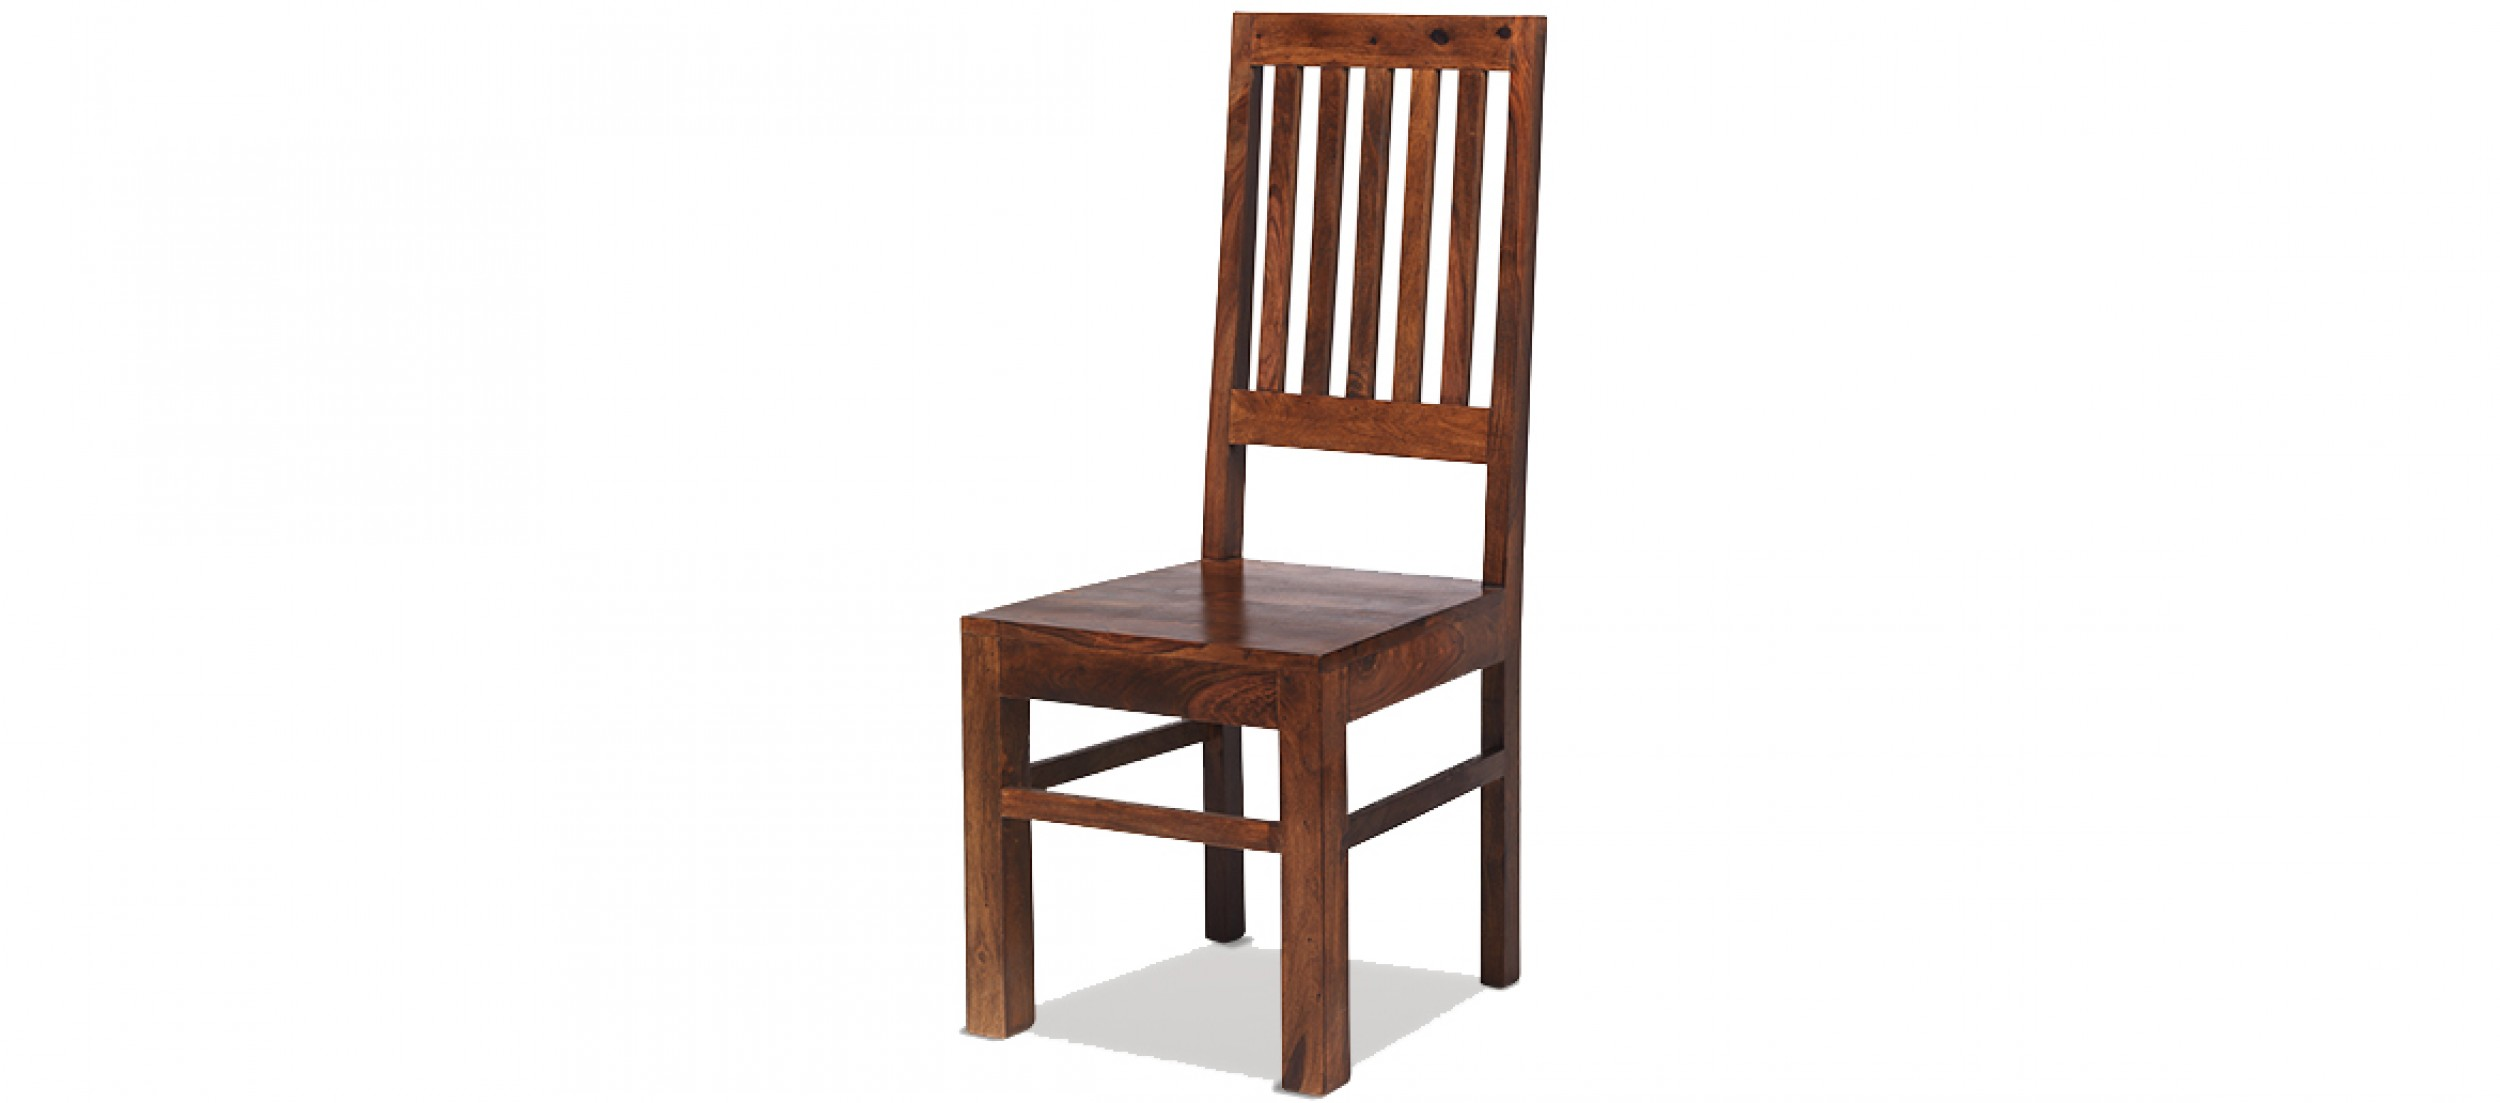 Standard Dining Chair Height Jali Sheesham High Back Slat Dining Chairs Pair